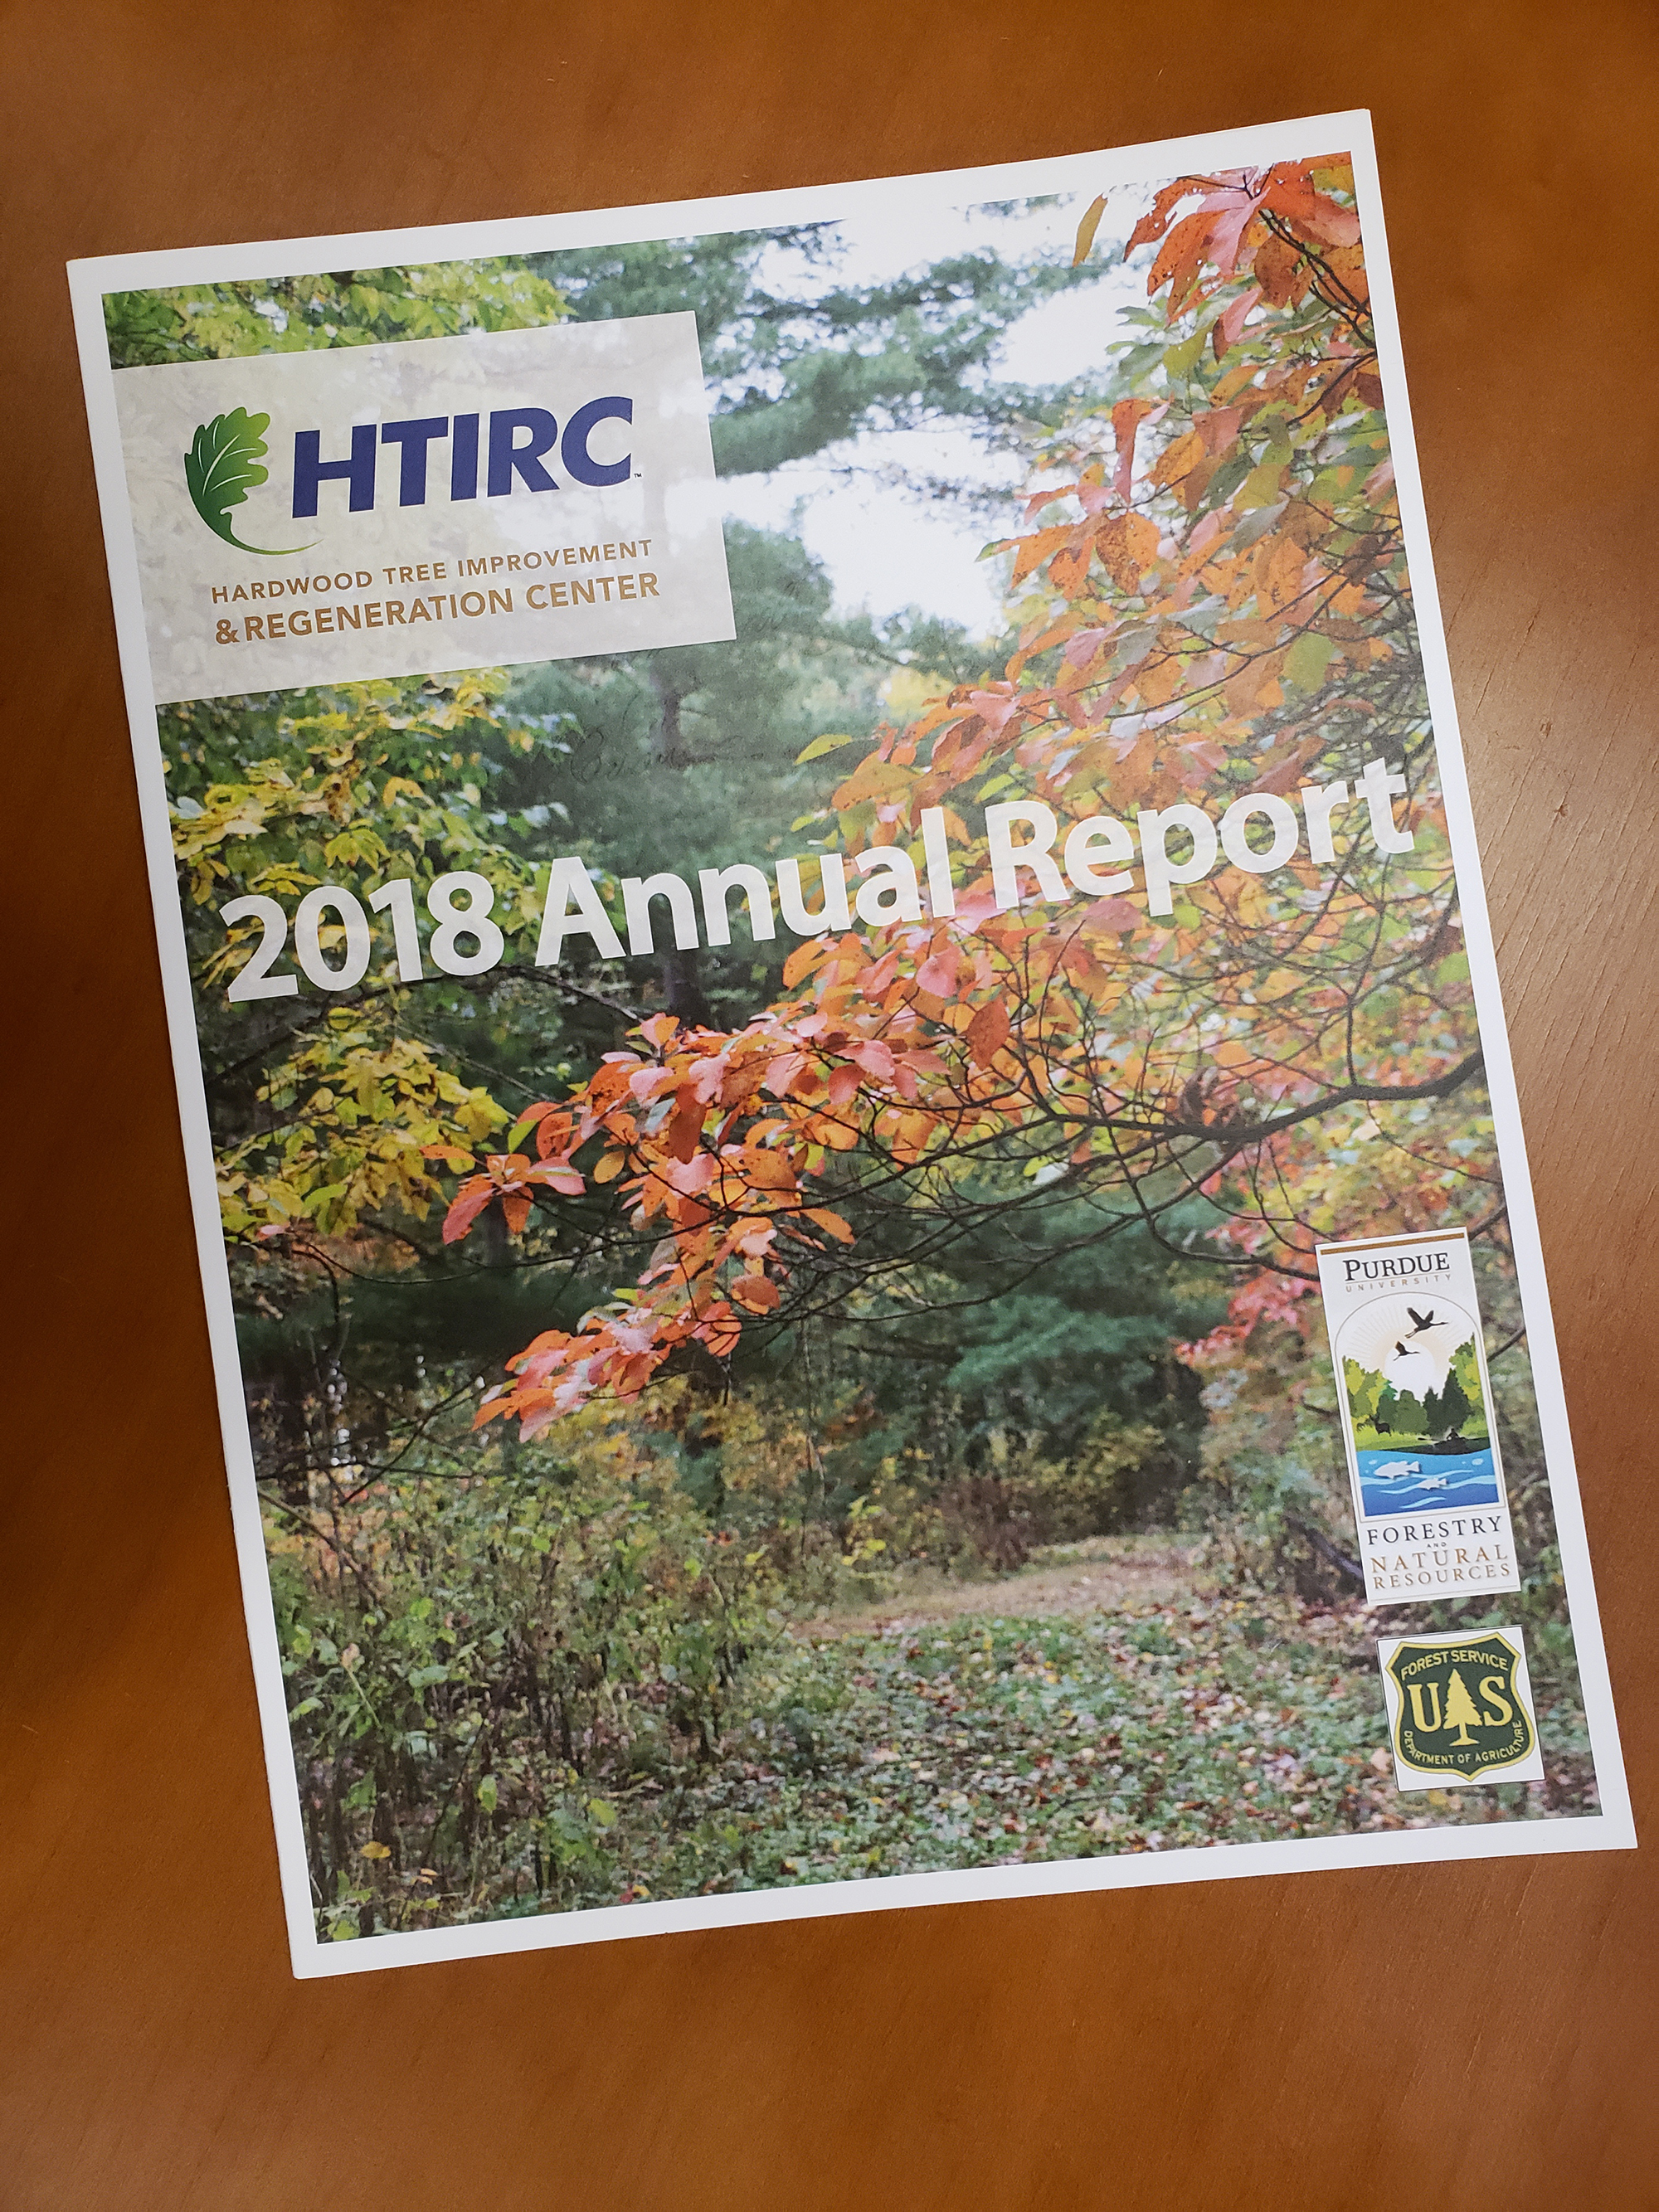 Image of the Annual Report front page